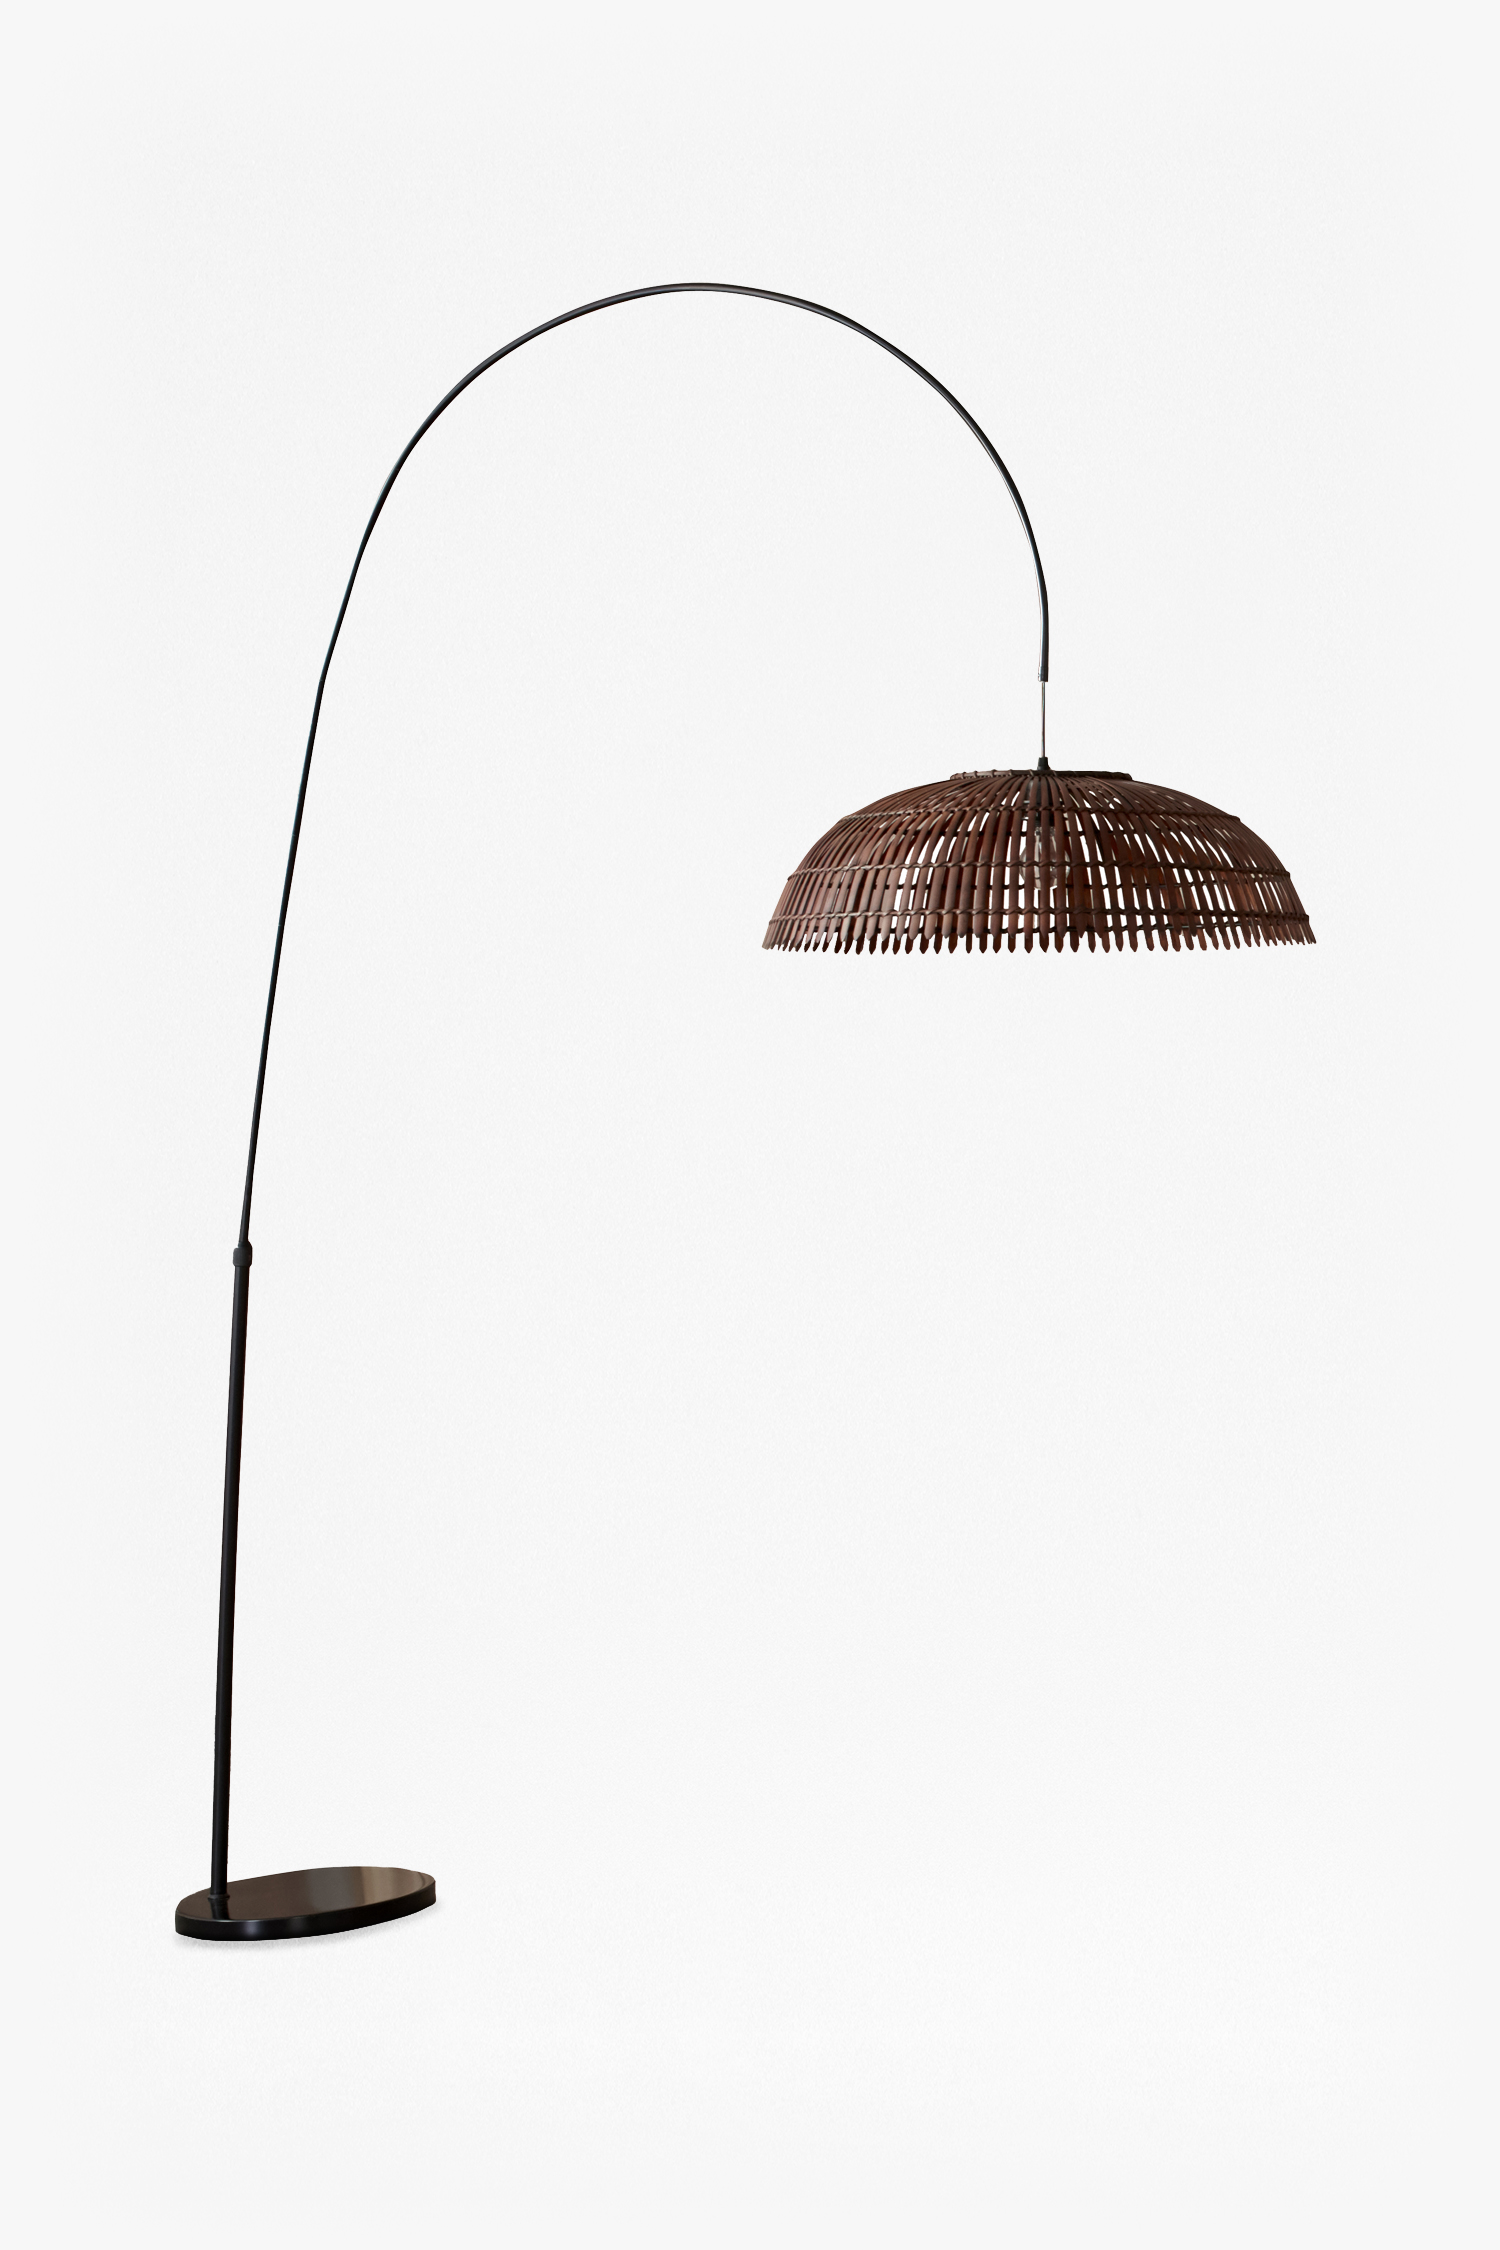 Image of: Wooden Pendant Arc Floorlamp Collection French Connection